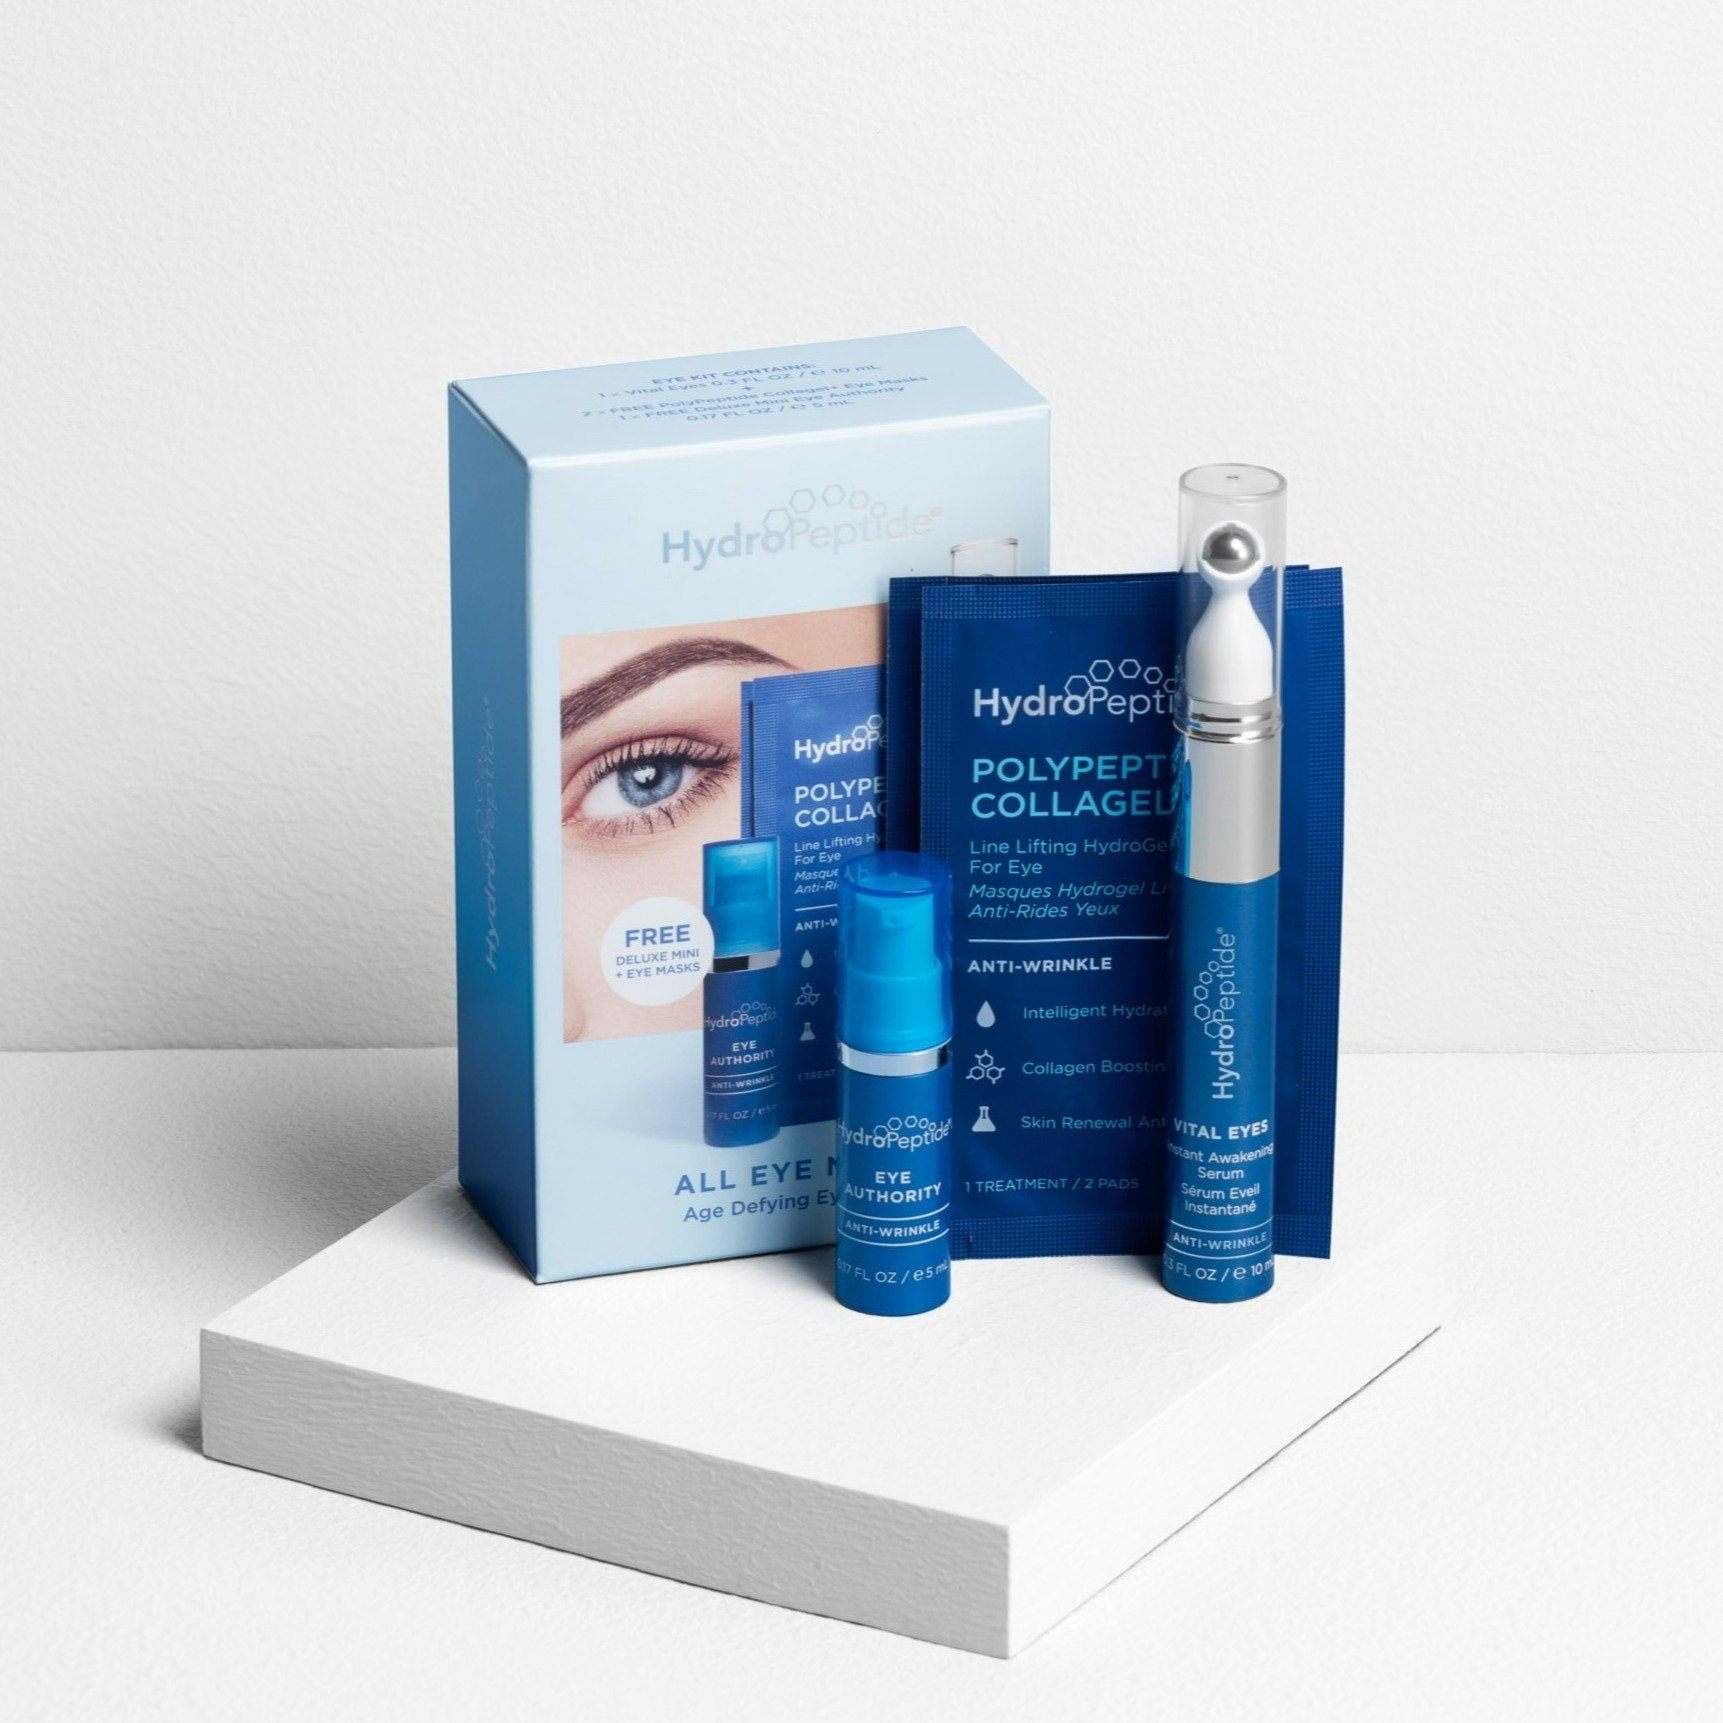 All Eye Need Kit - HydroPeptide